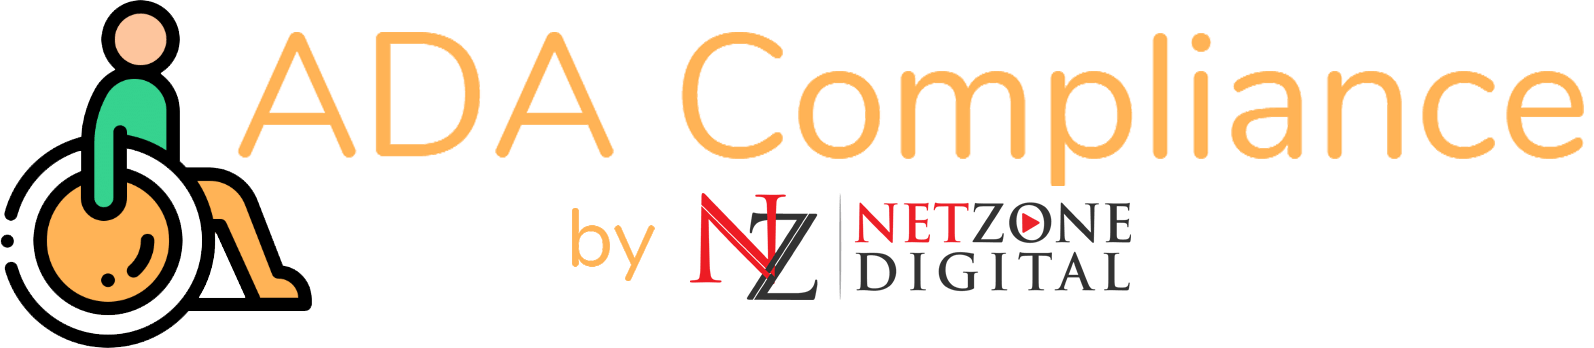 ADA Compliance by Netzone Digital logo